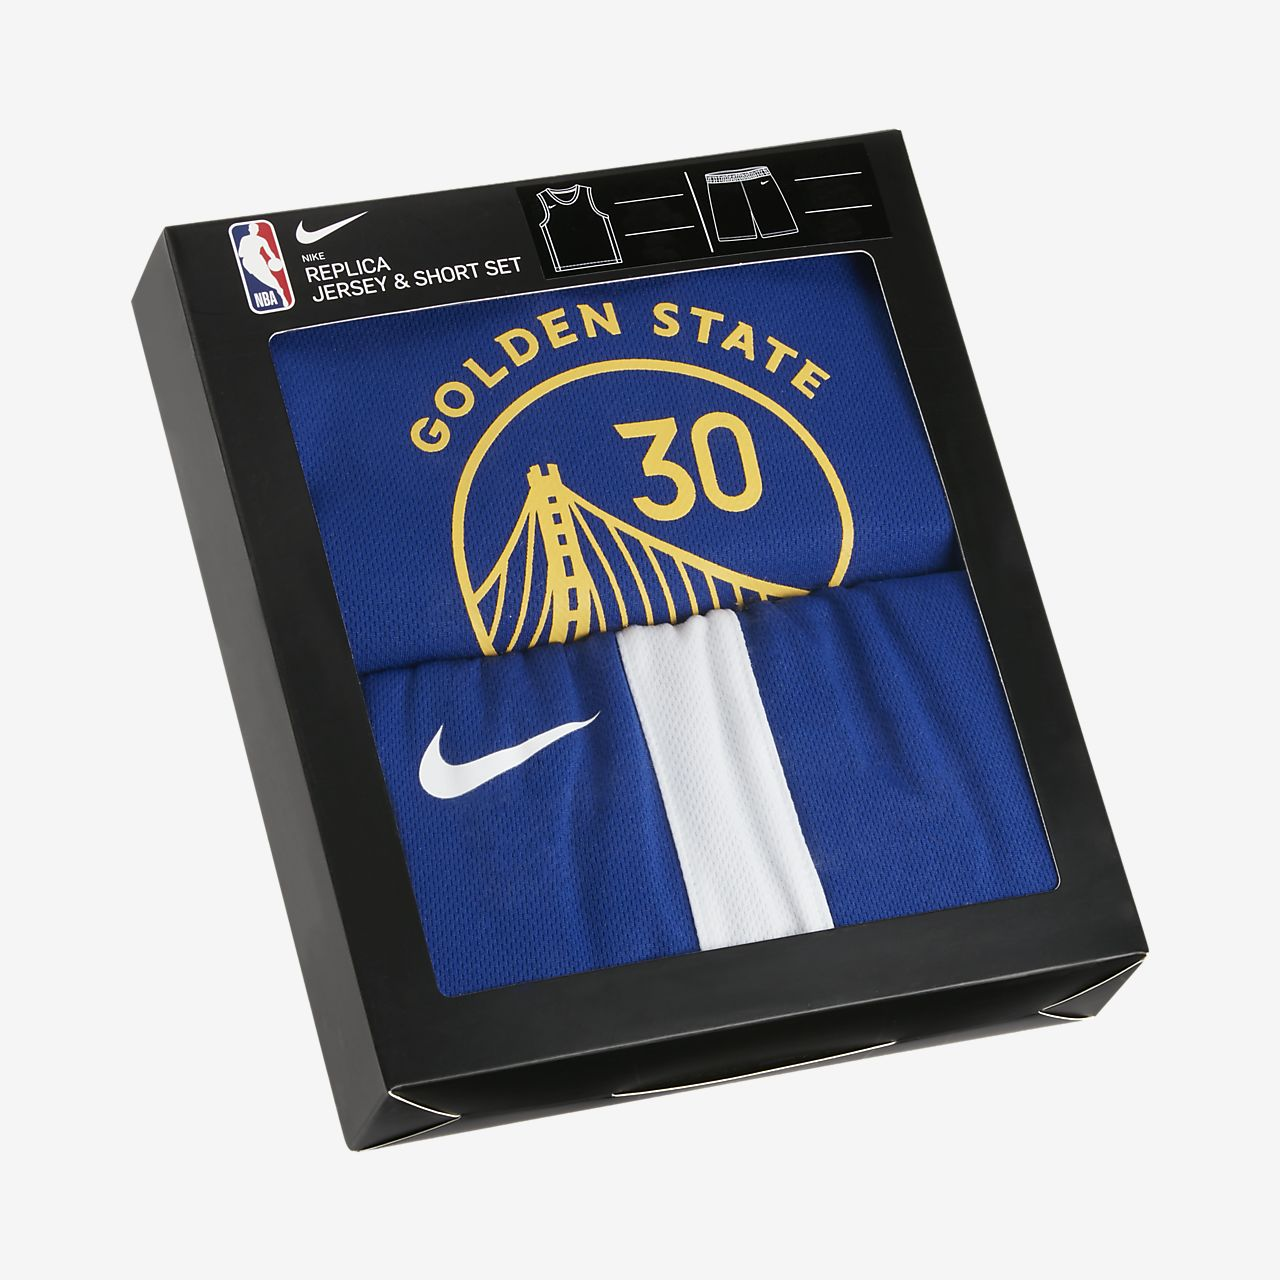 Warriors Replica Toddlers' Nike NBA Jersey and Shorts Box Set